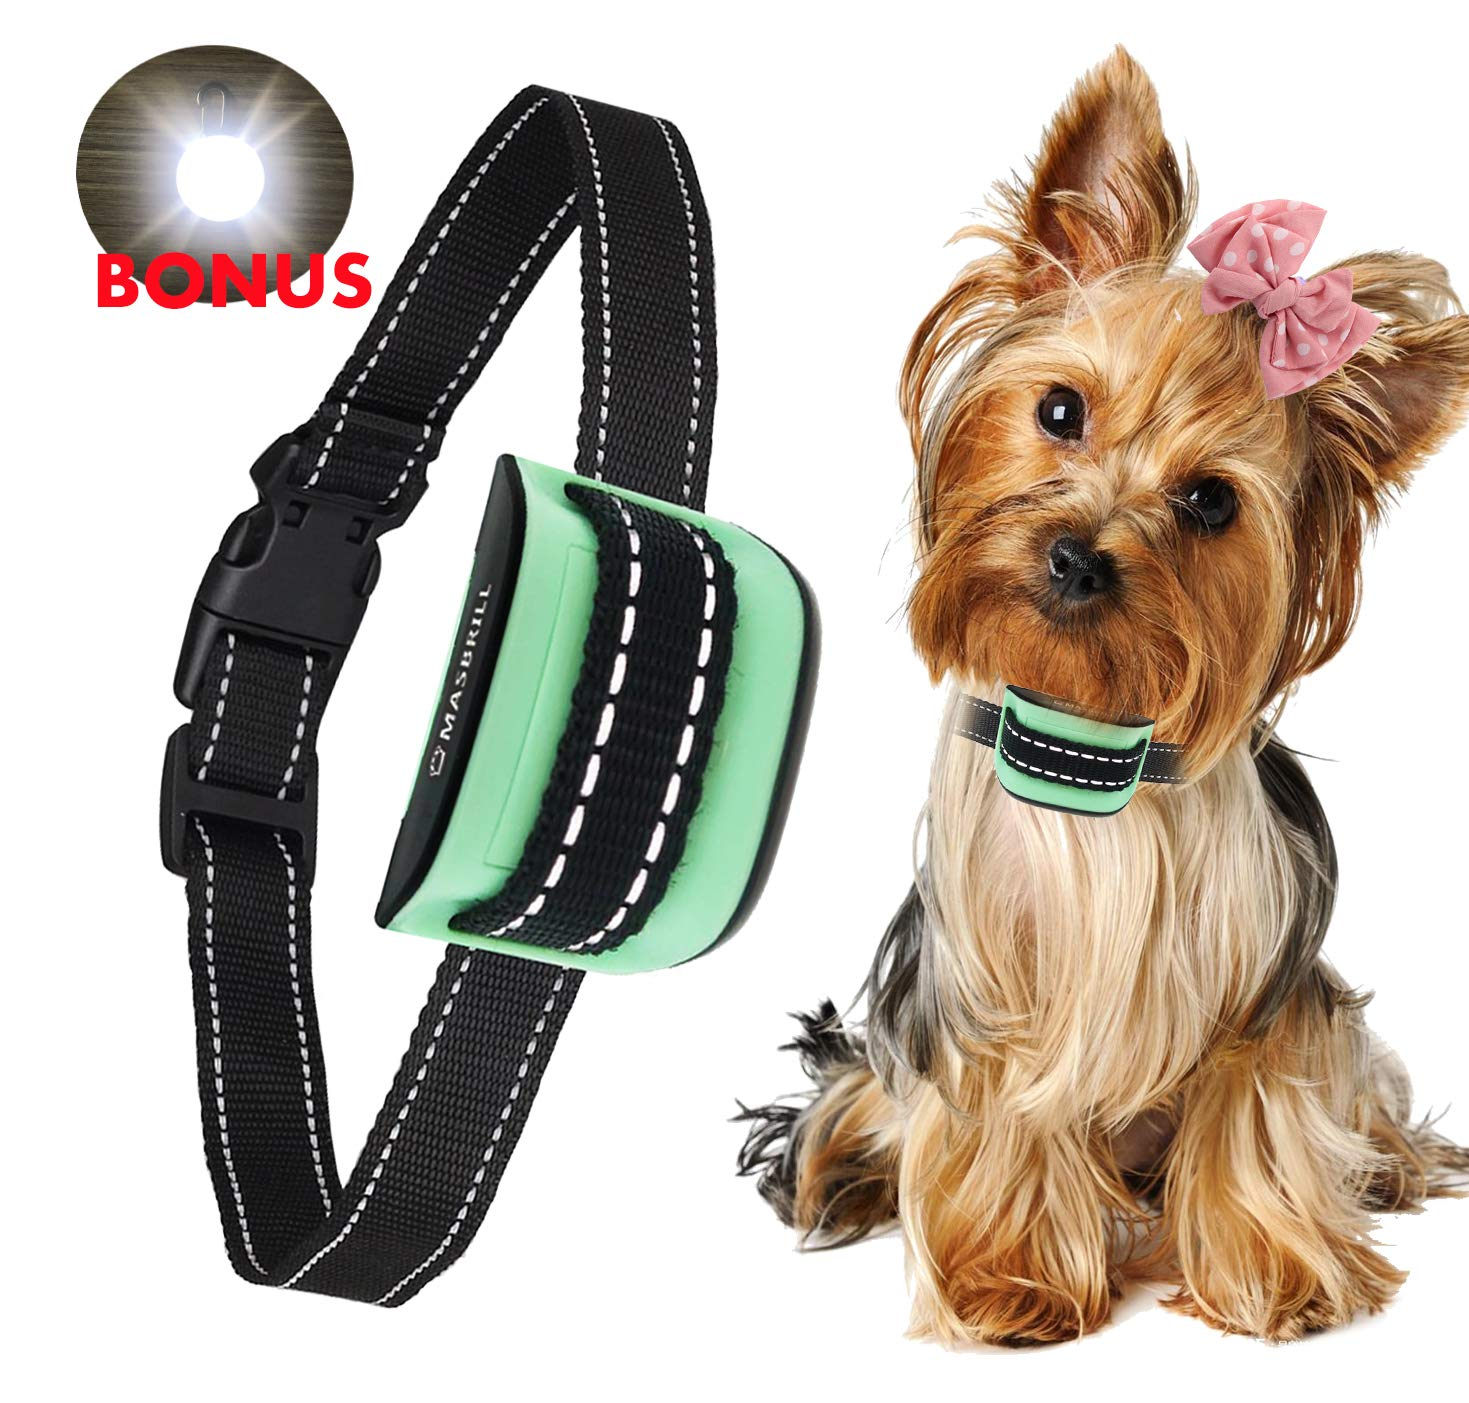 MASBRIL Dog Bark Collar - Upgrade 2018 Safe No Bark Control Device for Tiny Small Medium Dog-Stop Barking by Sound and Vibration- No Shock Human Way-Best Choice for Dog Lovers (Green(5-55lbs))